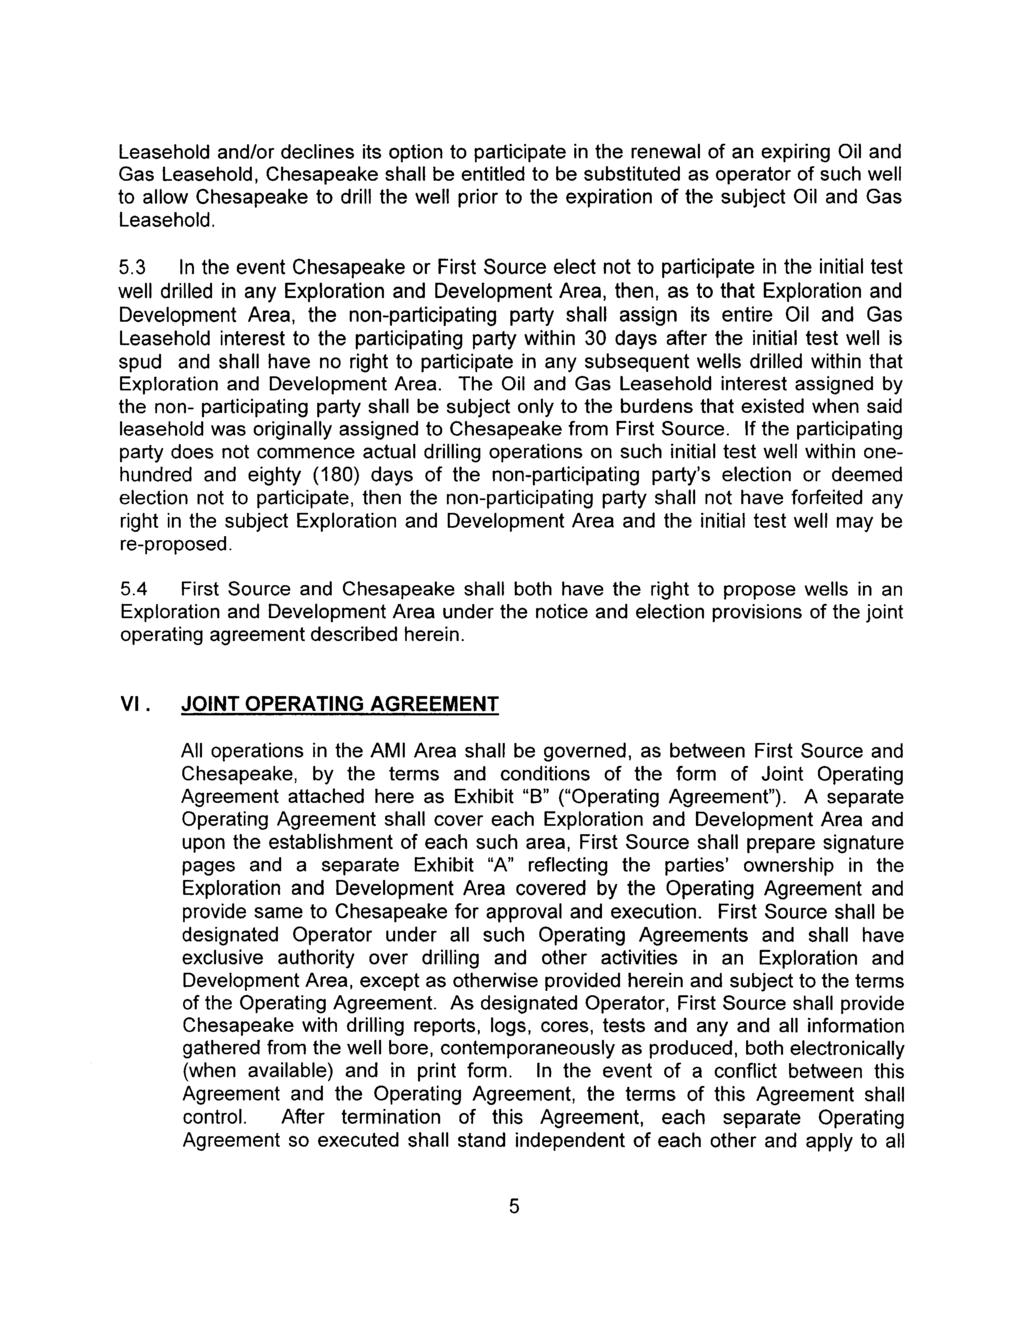 Case 4:12-cv-02922 Document 7-5 Filed in TXSD on 10/24/12 Page 5 of 8 Leasehold and/or declines its option to participate in the renewal of an expiring Oil and Gas Leasehold, Chesapeake shall be